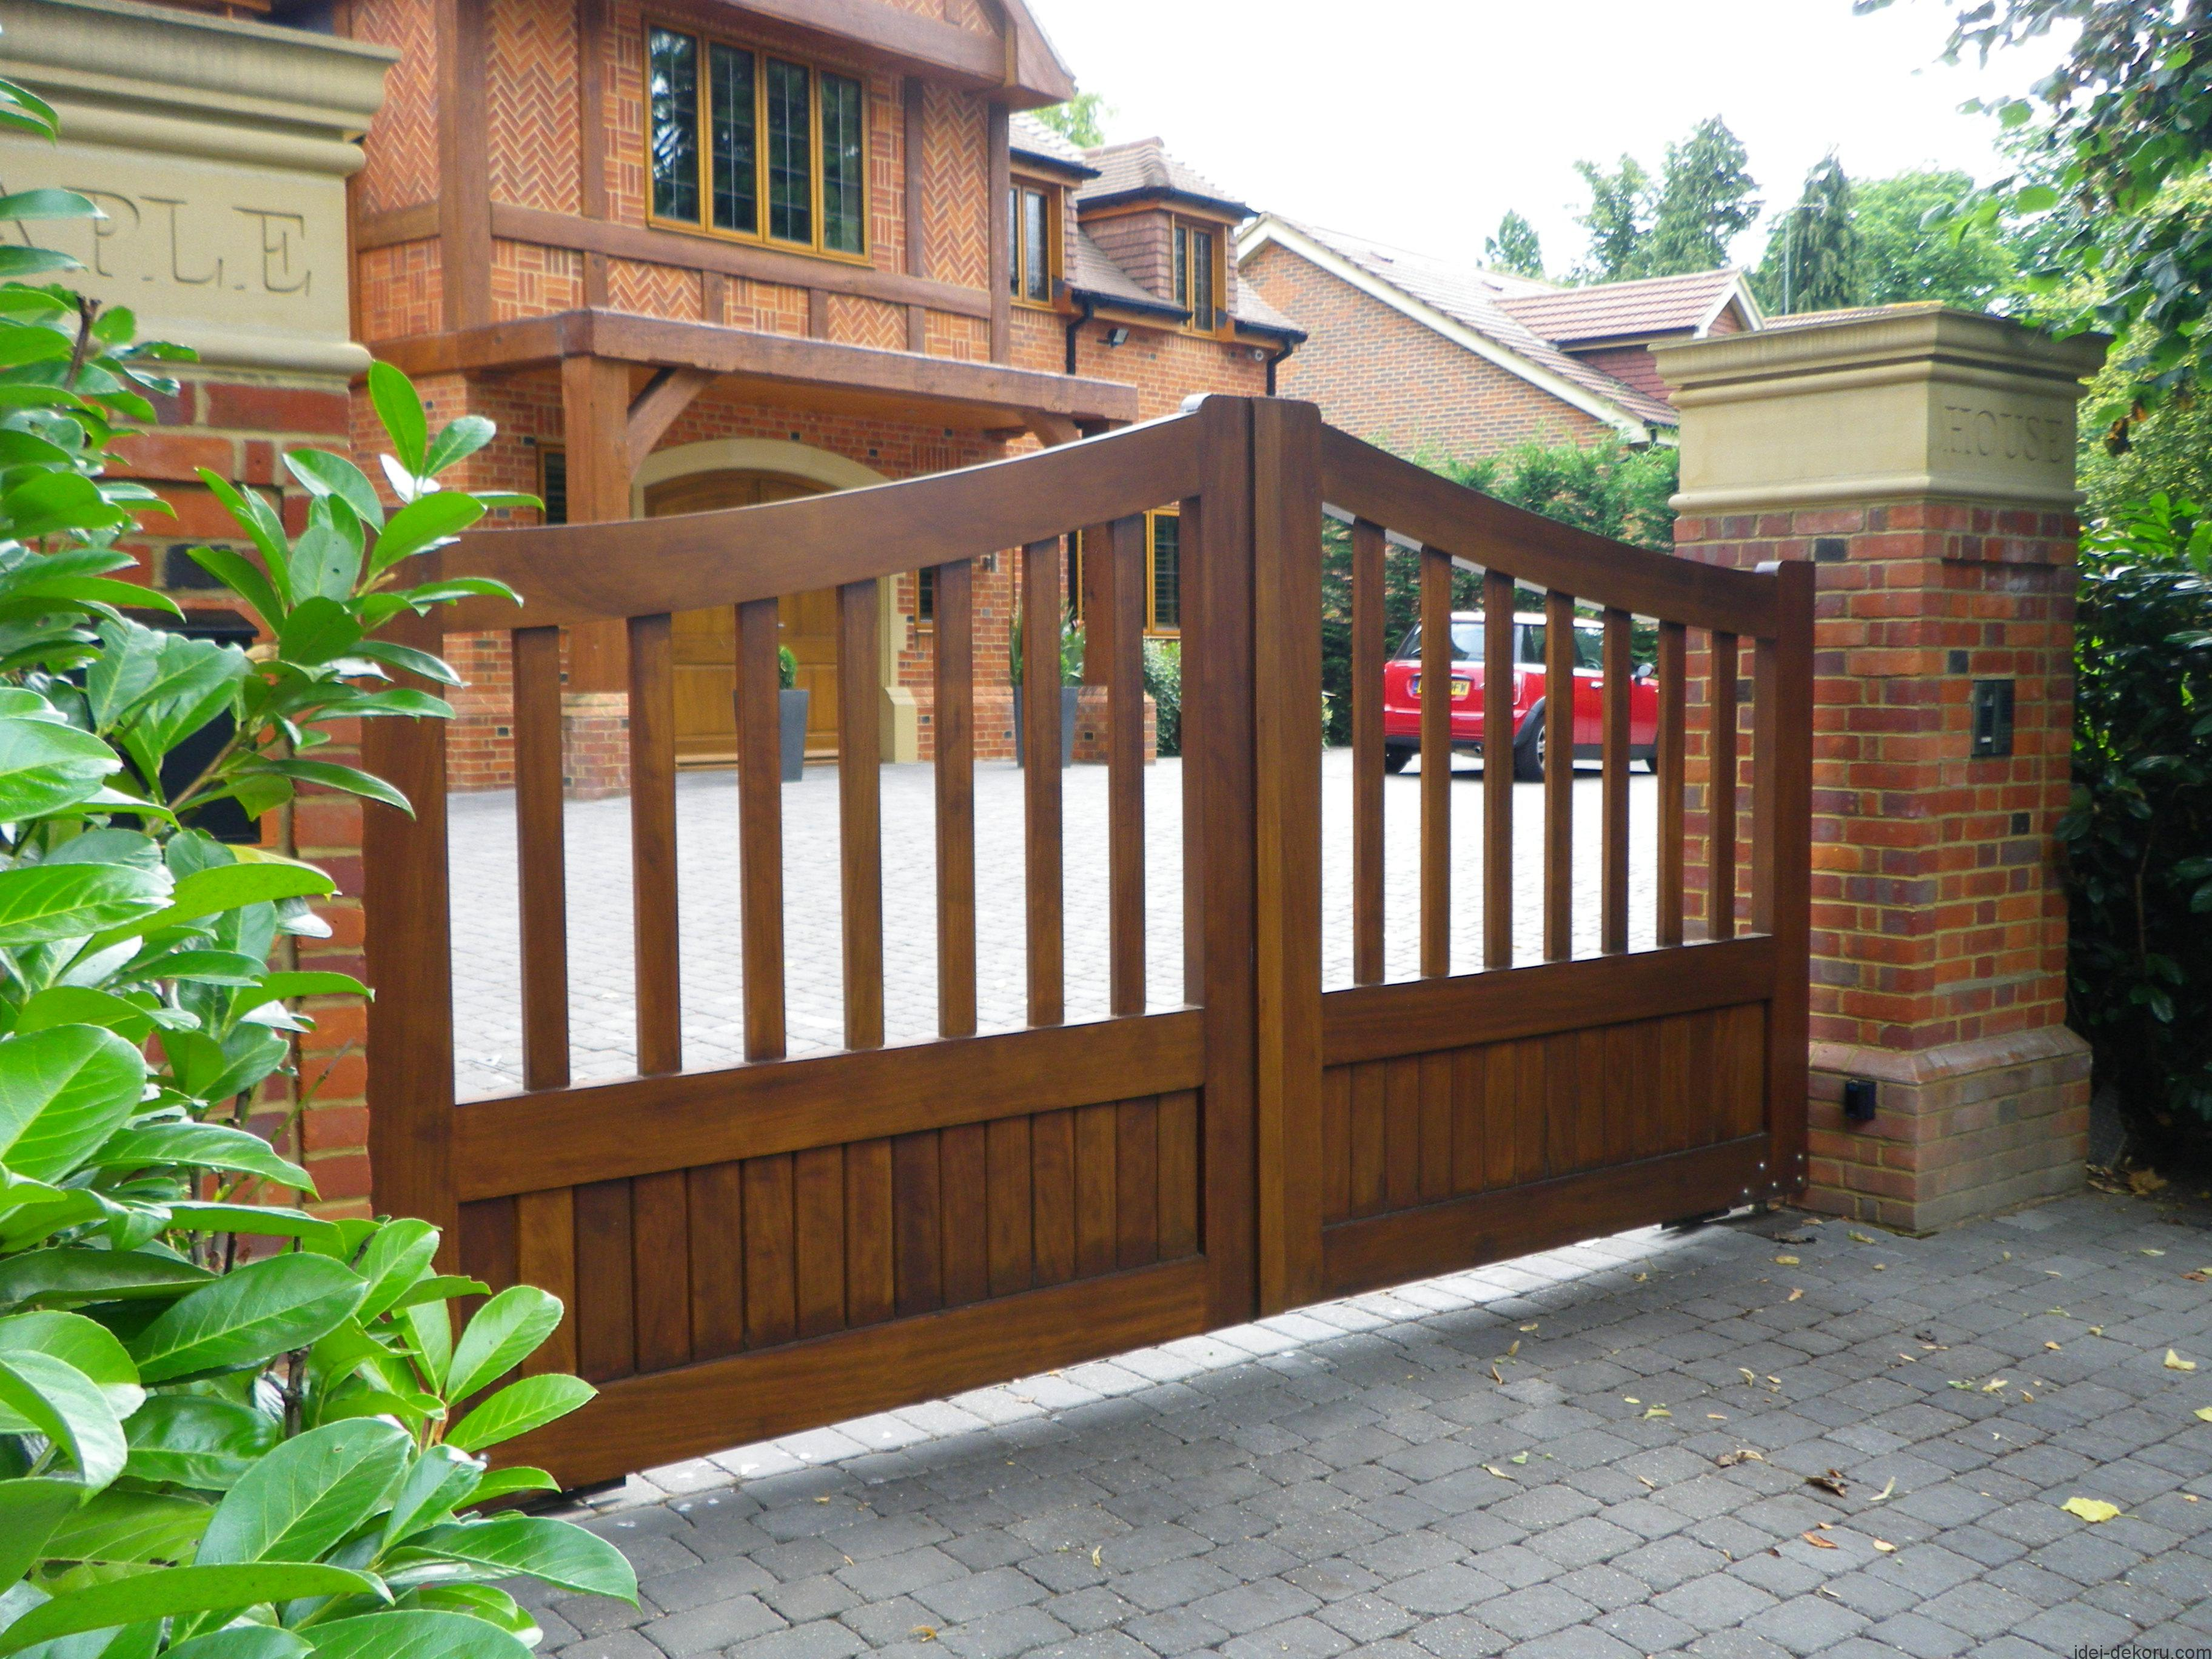 architecture-timber-gates-electric-gates-estate-entry-doors-ornamental-metal-designers-iron-driveway-gates-wooden-farm-wrought-fences-and-for-ideas-front-design-home-entrance-steel-front-gate-design